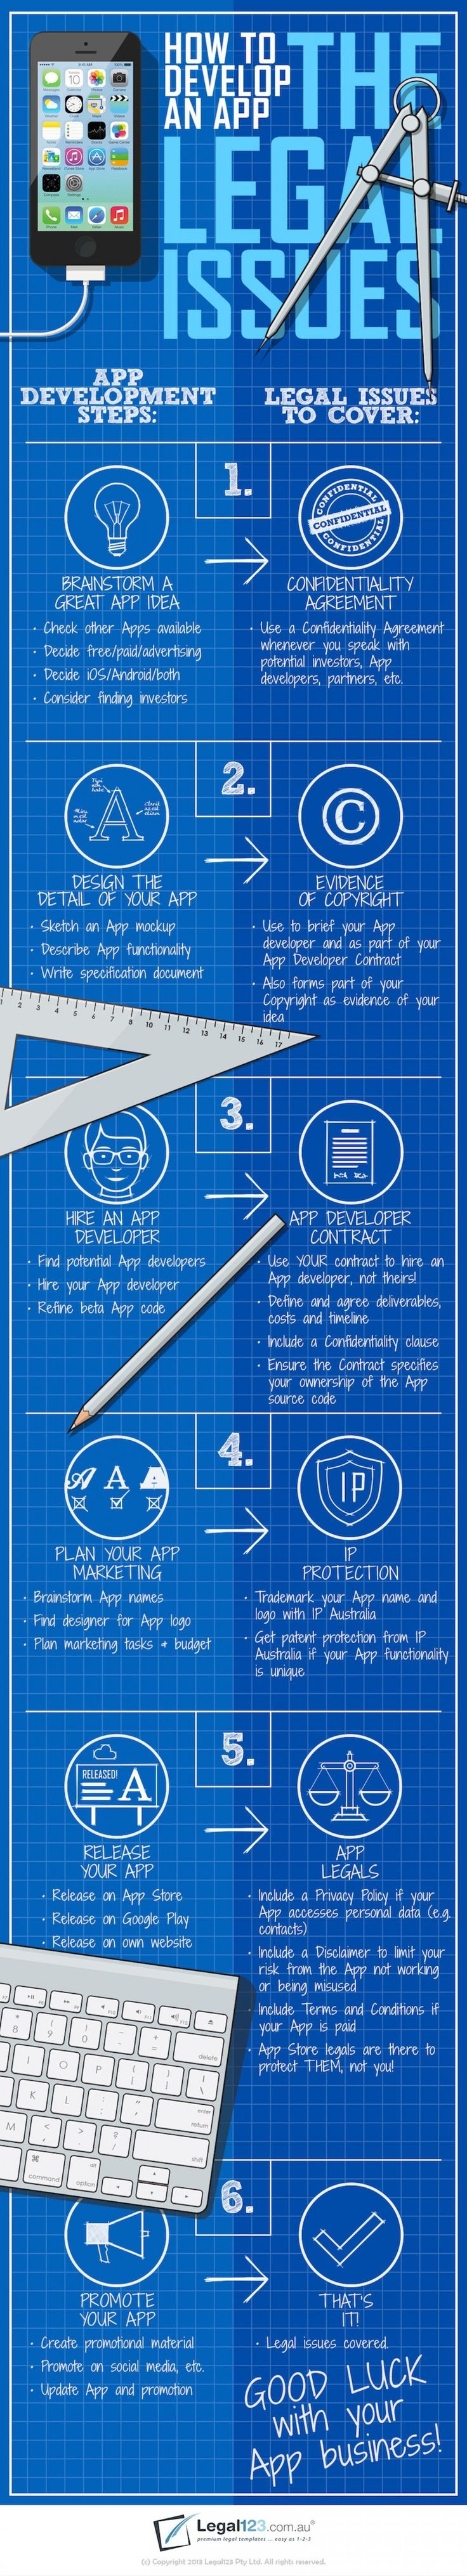 How To Develop An App: The Legal Issues Latest News & Trends On #webdesign